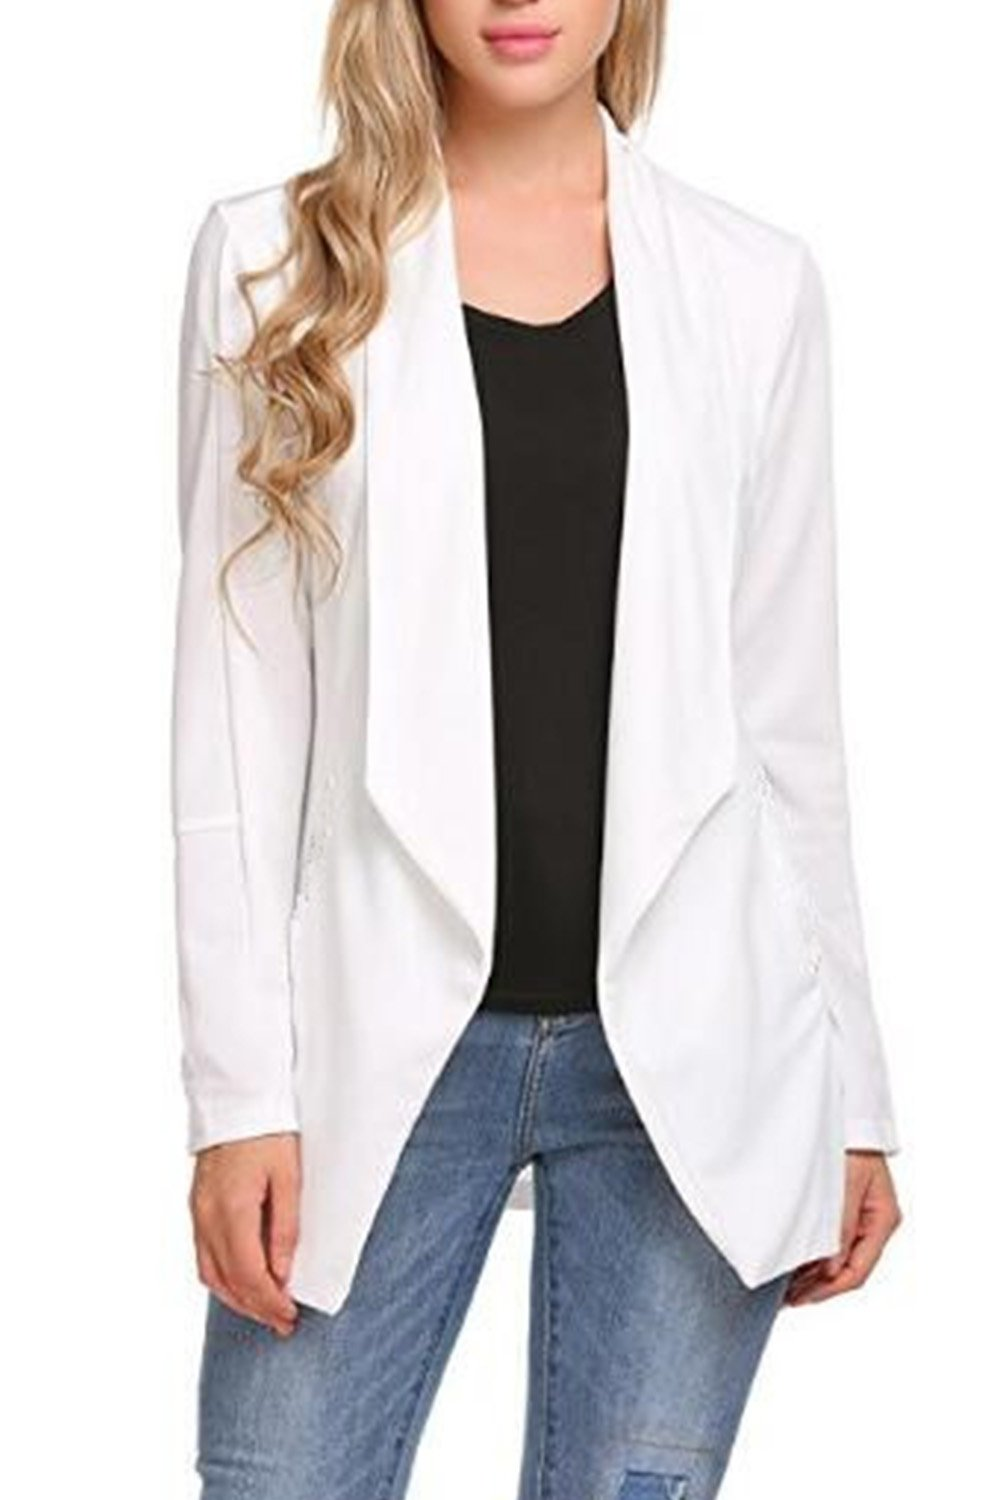 Women Elegant Long Sleeve Cardigan Formal Suit CACY40